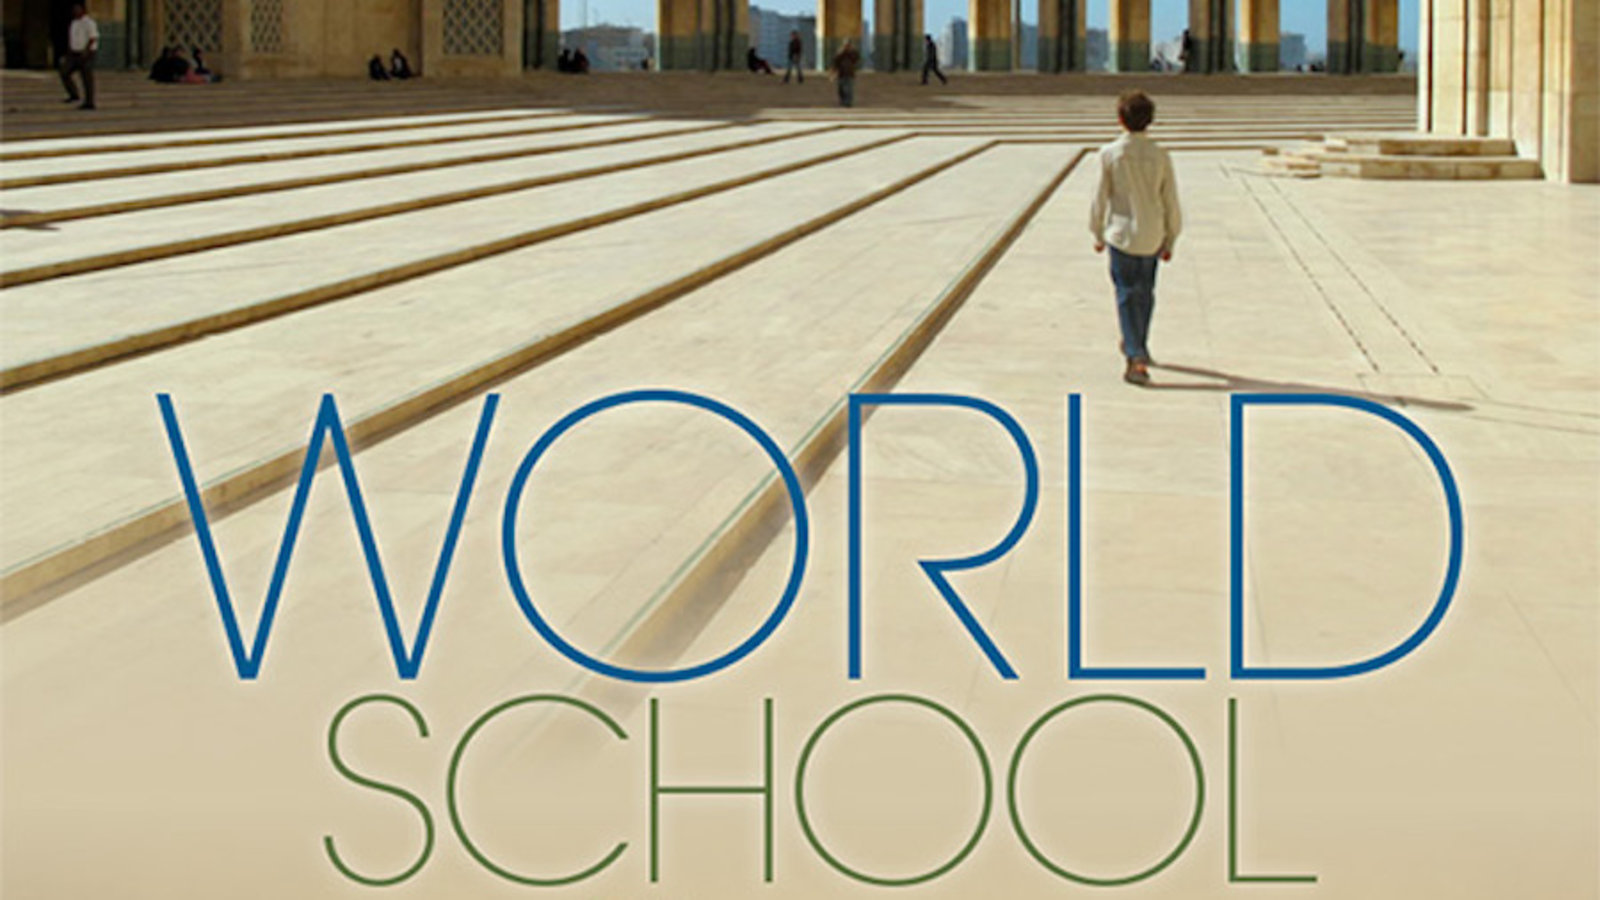 World School - The Journey of a Mother and Son Traveling the World